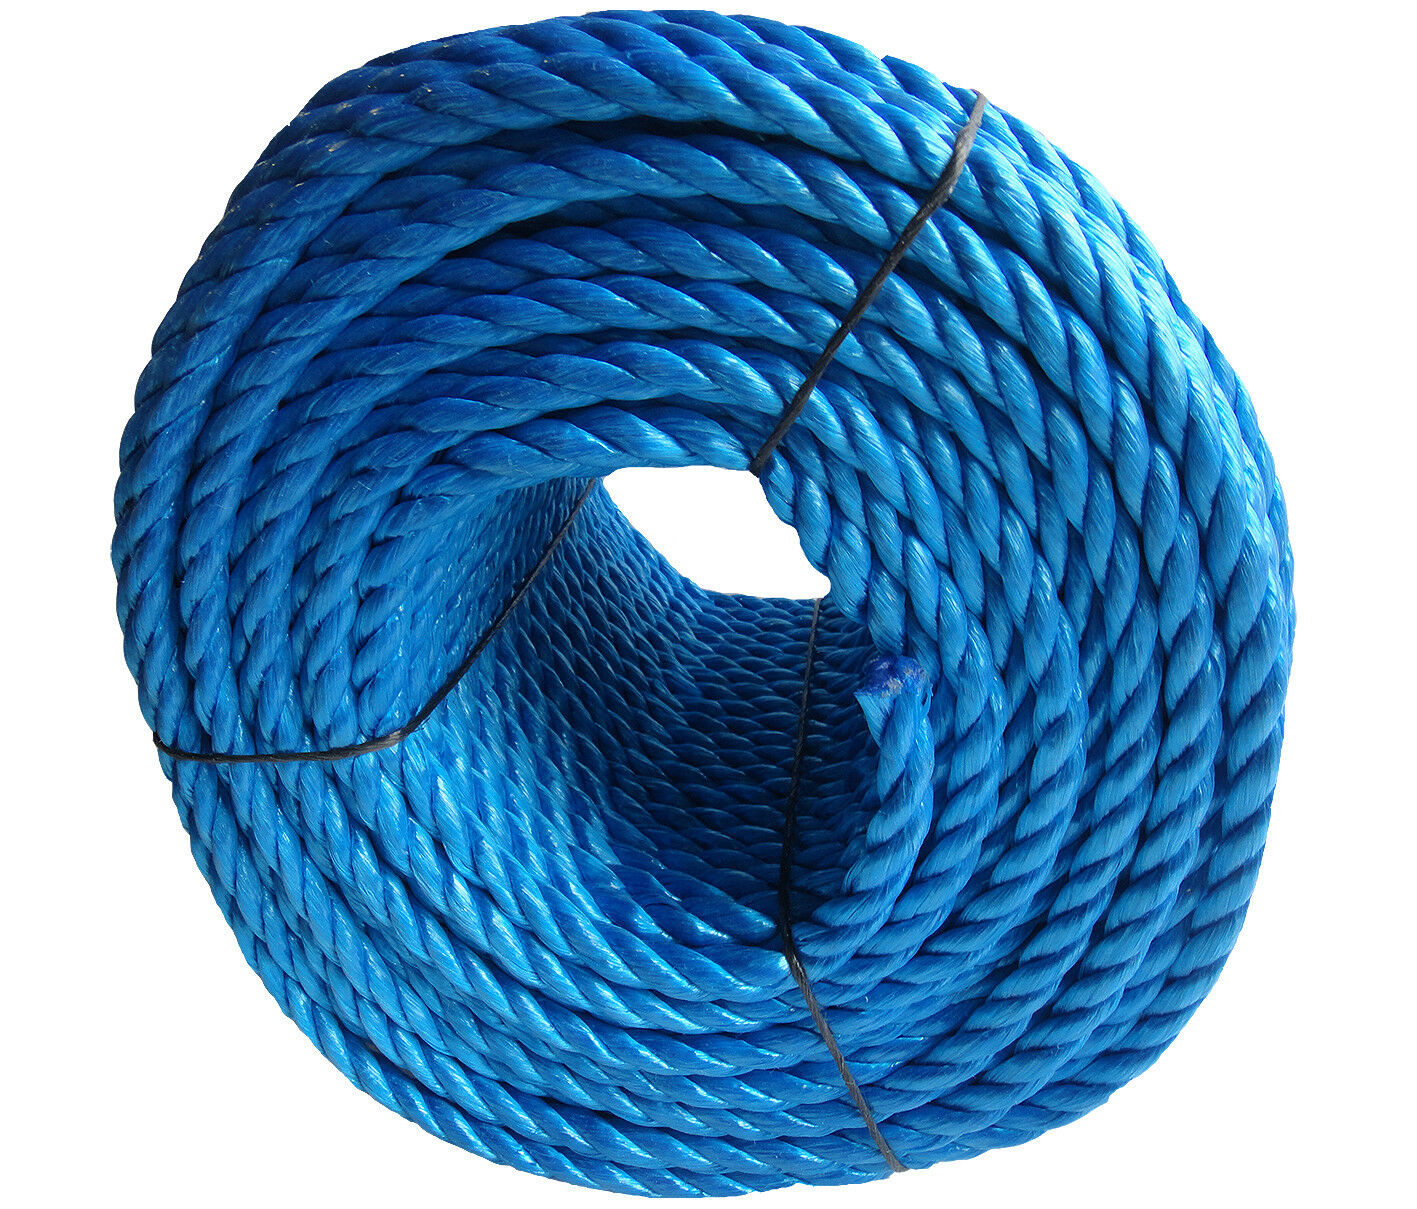 20mm bluee Polypropylene Rope Coils, Polyrope, PP Sailing, Agriculture, Camping